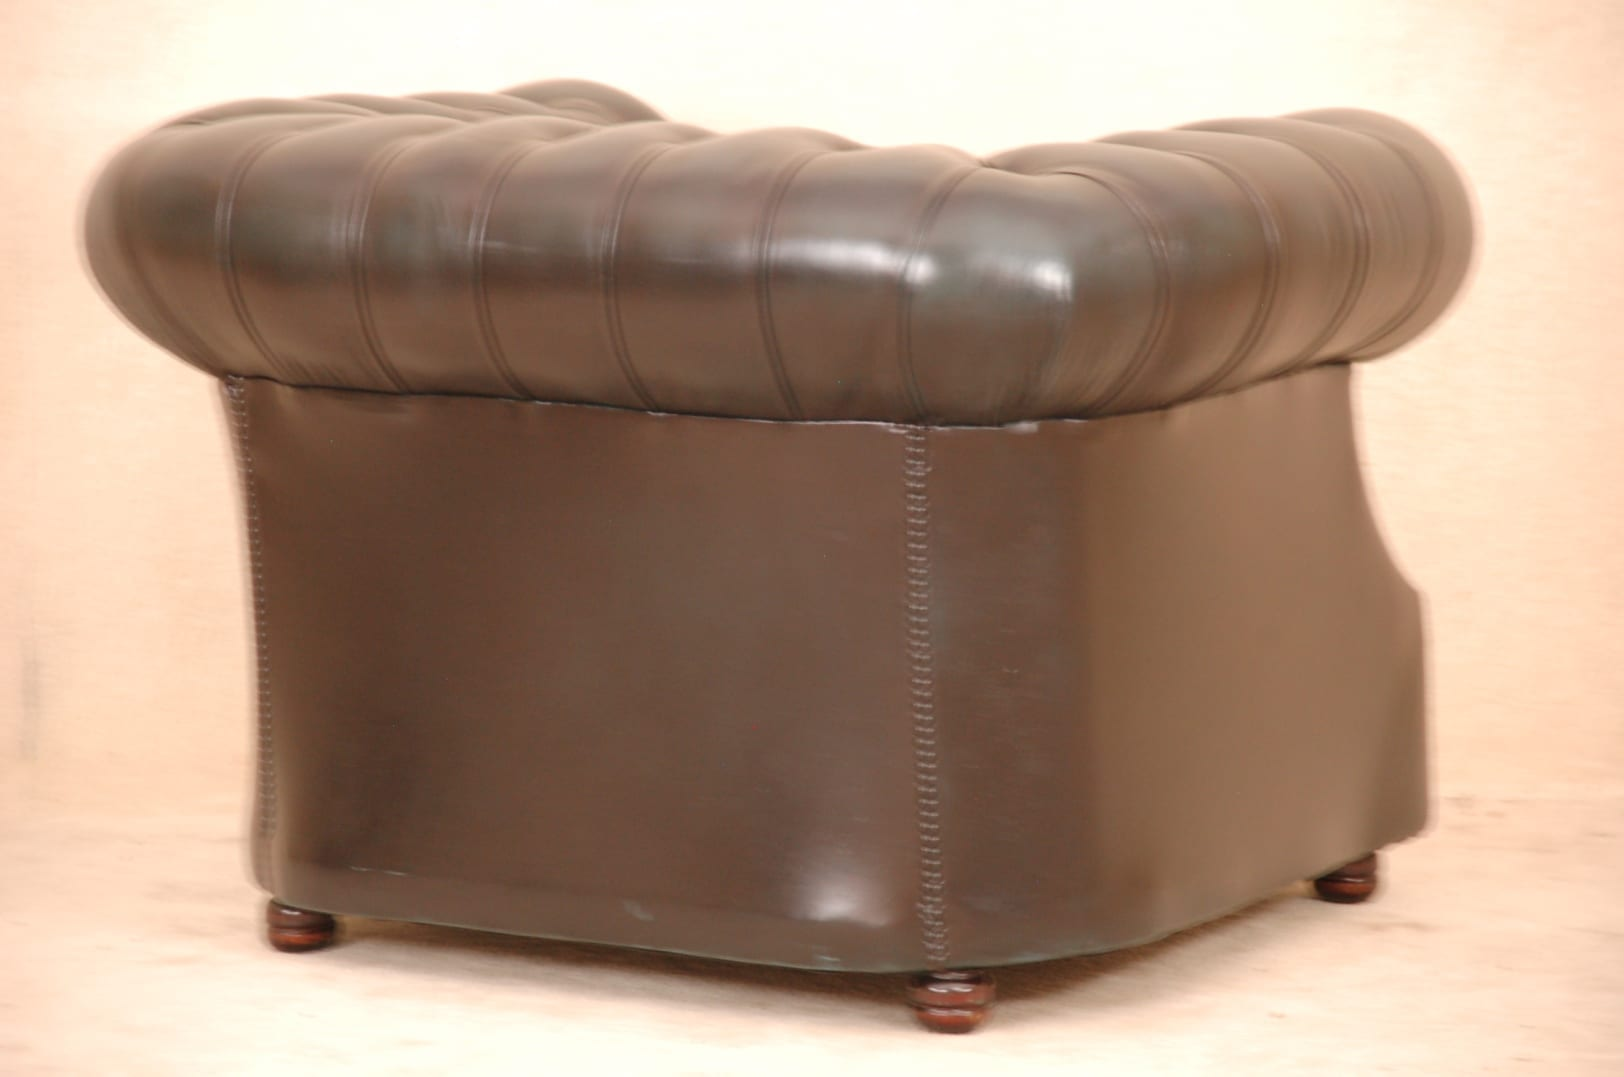 173323_9773-blauwe chesterfield fauteuil